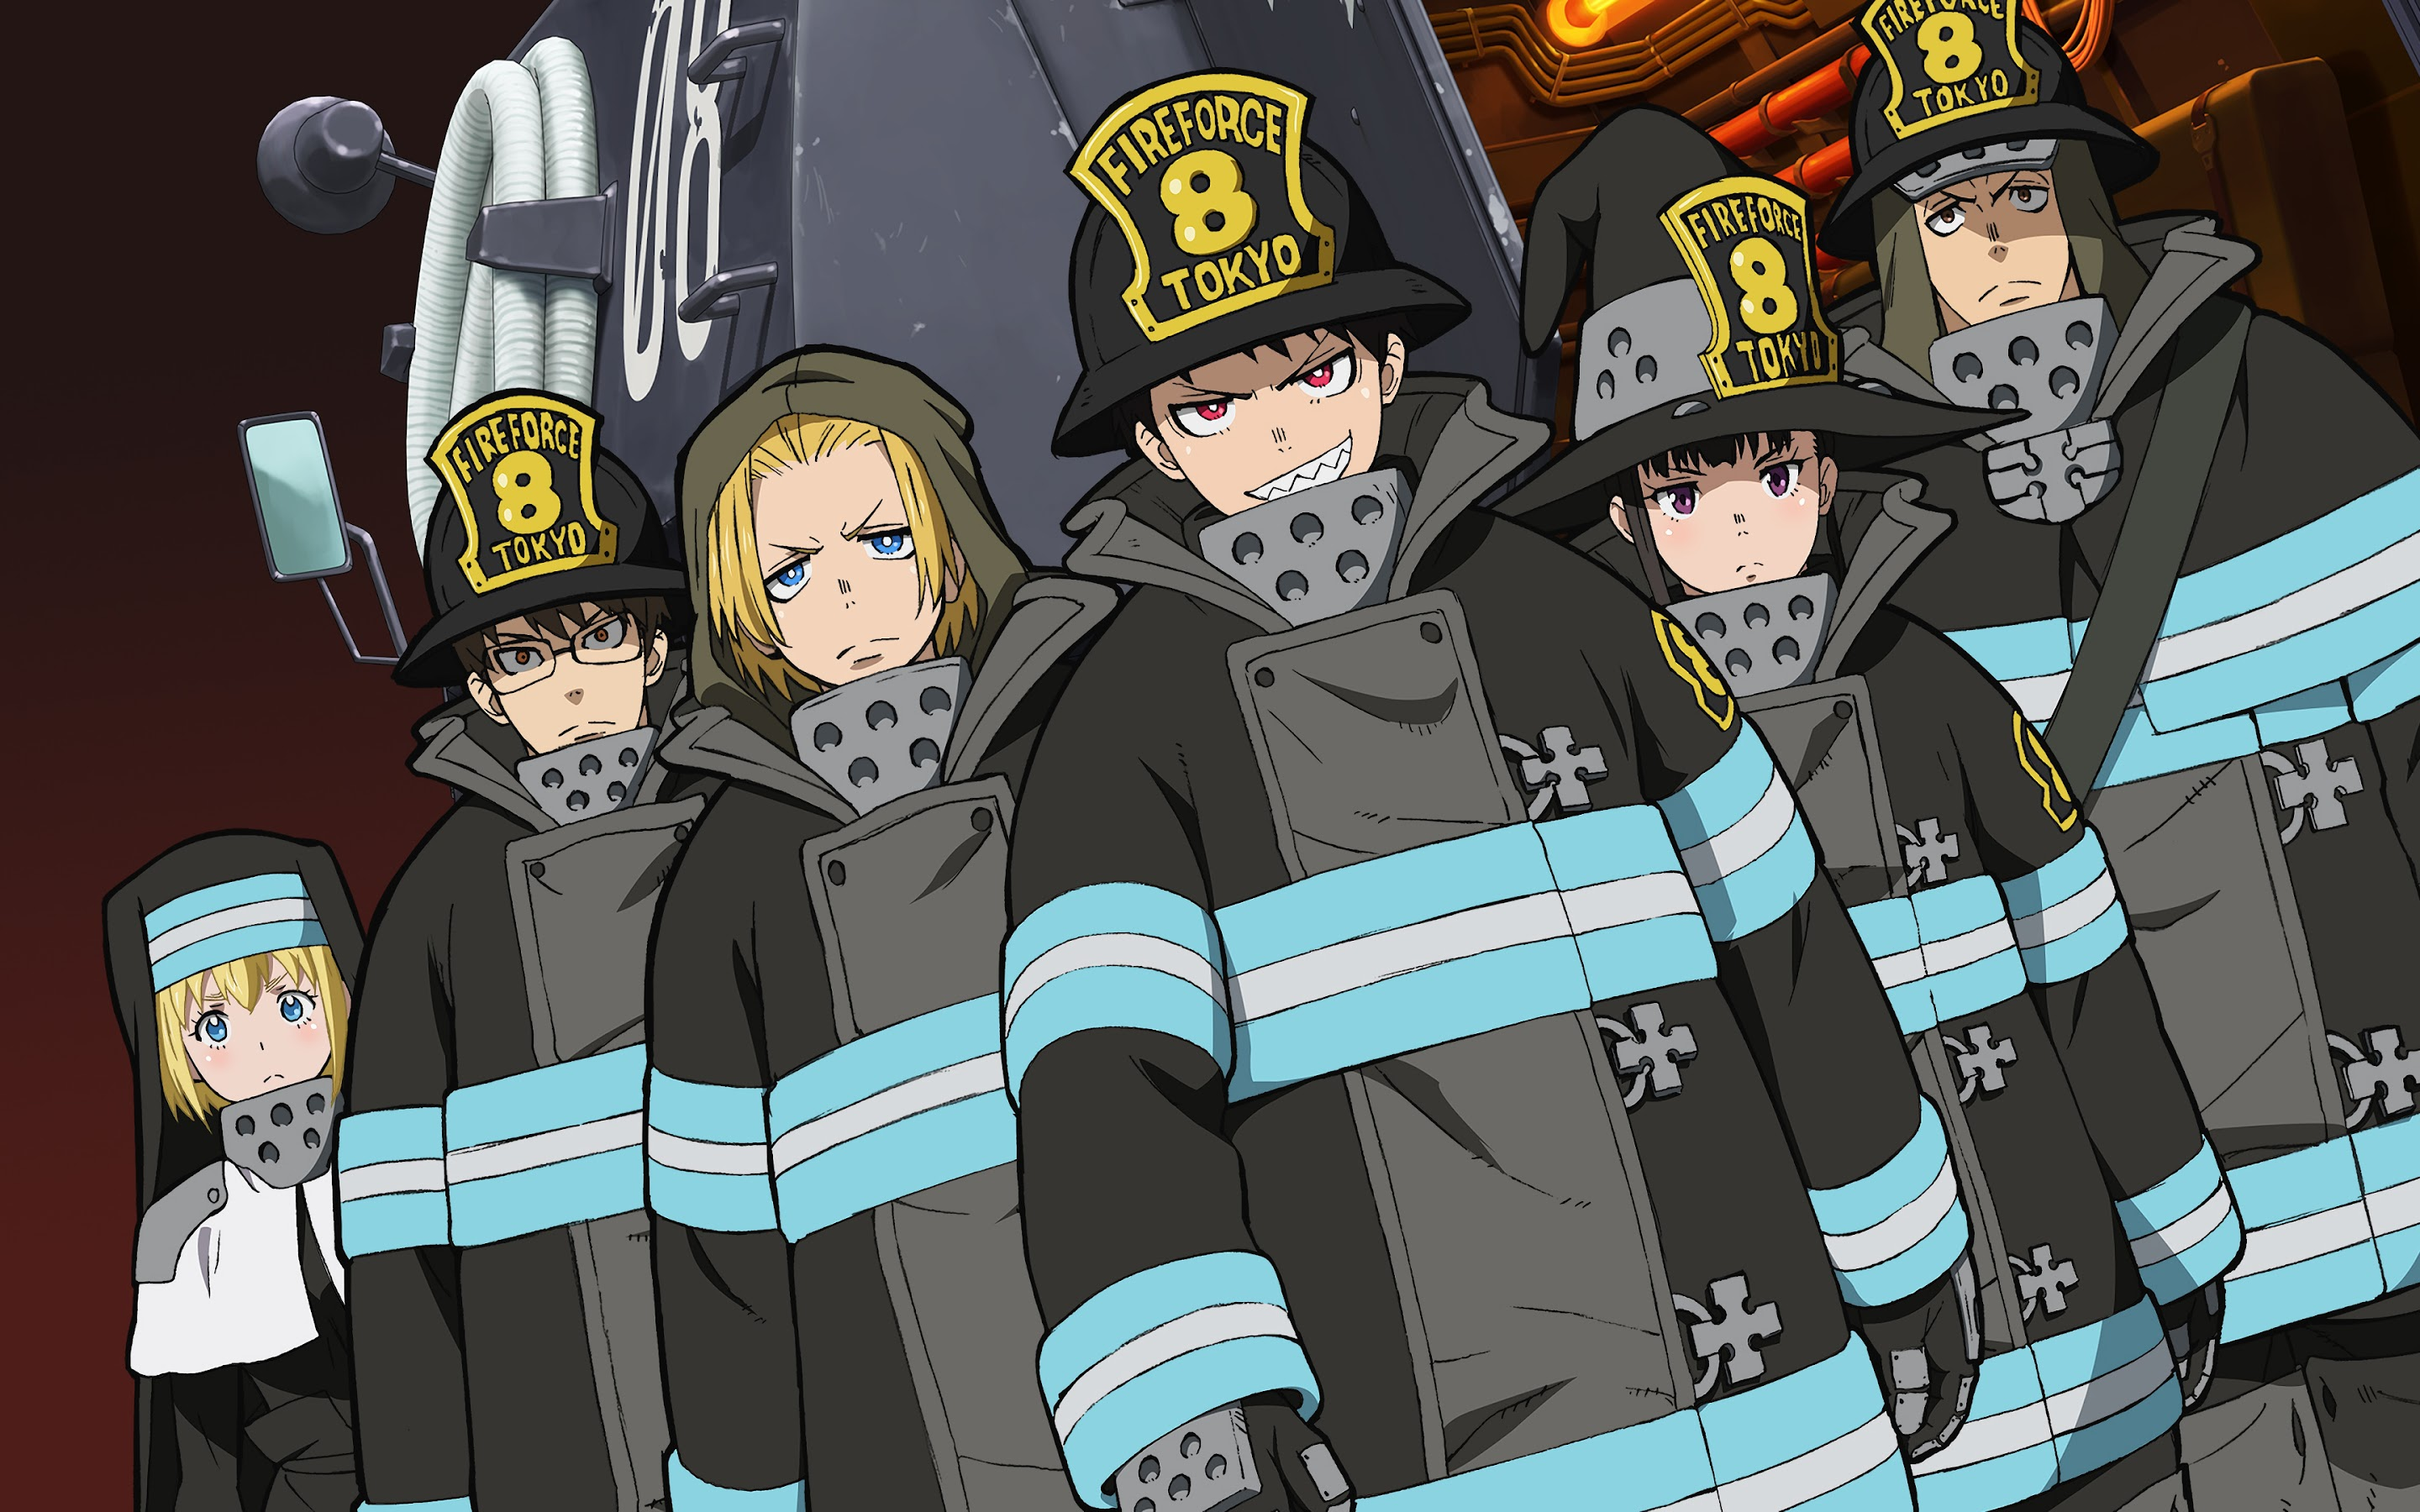 Fire Force Characters Special Fire Force Company 8 4k Wallpaper 37 Tons of awesome fire force wallpapers to download for free. fire force characters special fire